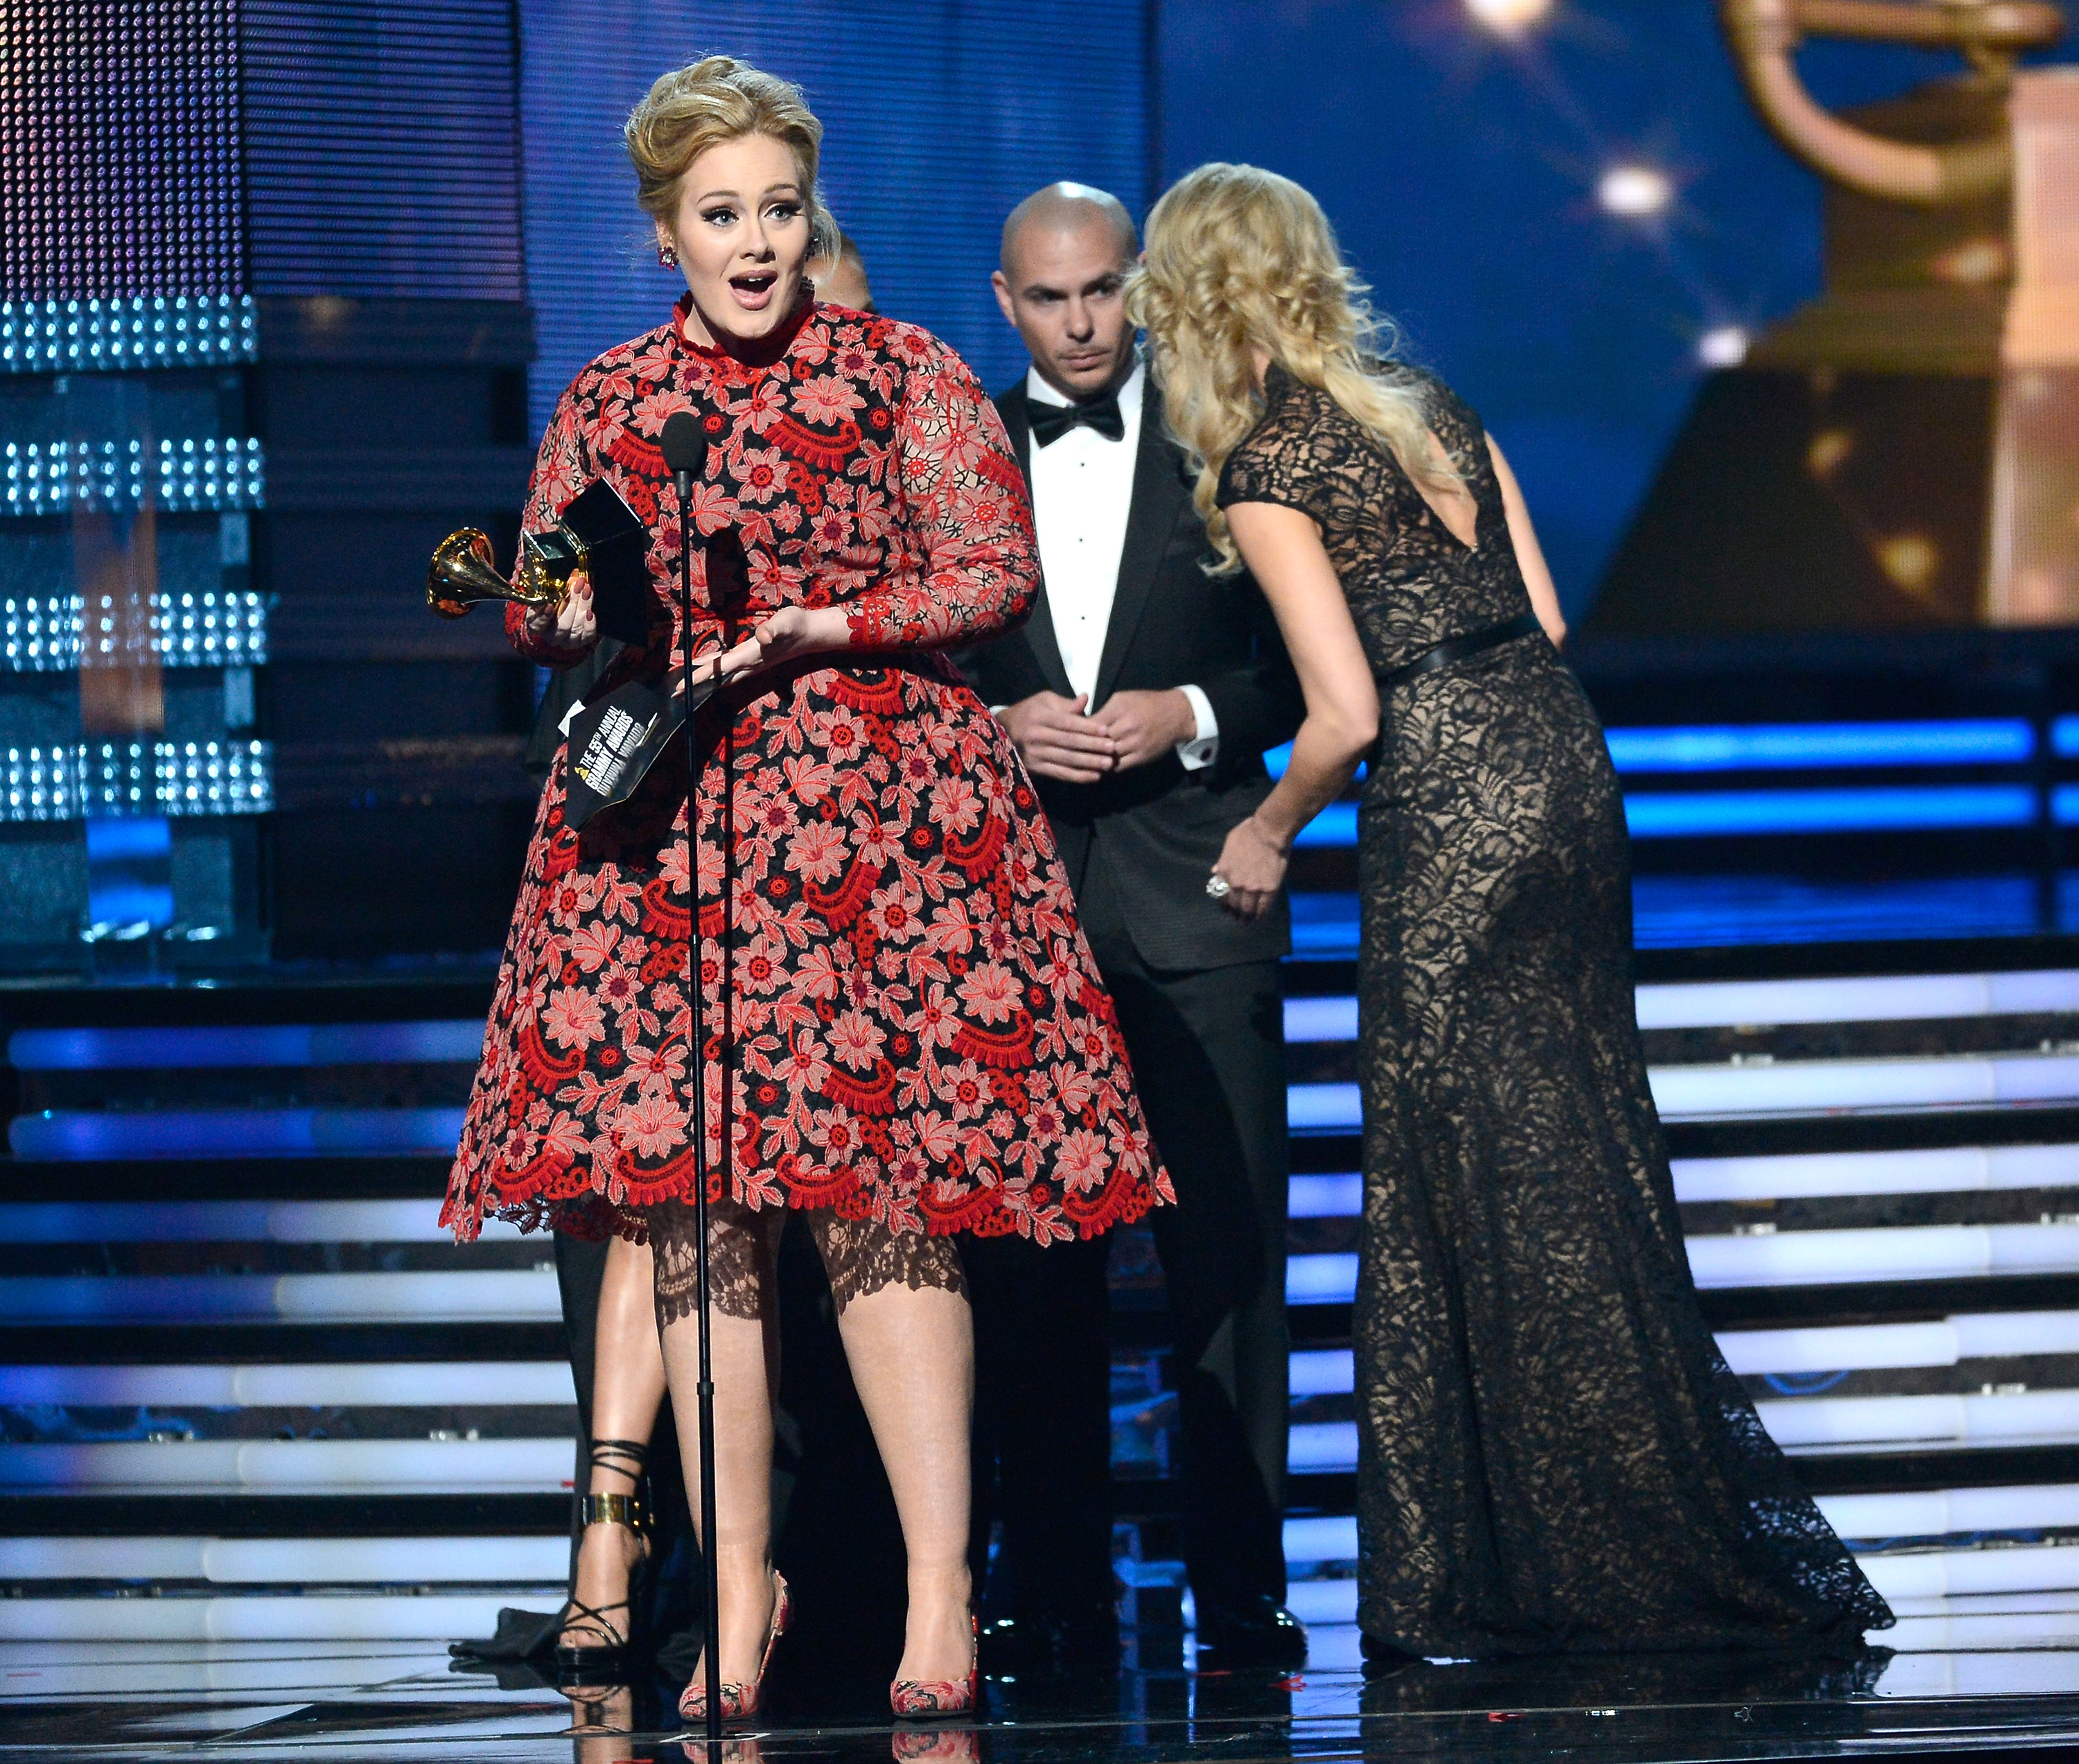 Adele stepped up to accept her award Sunday night at the 2013 Grammys in LA.